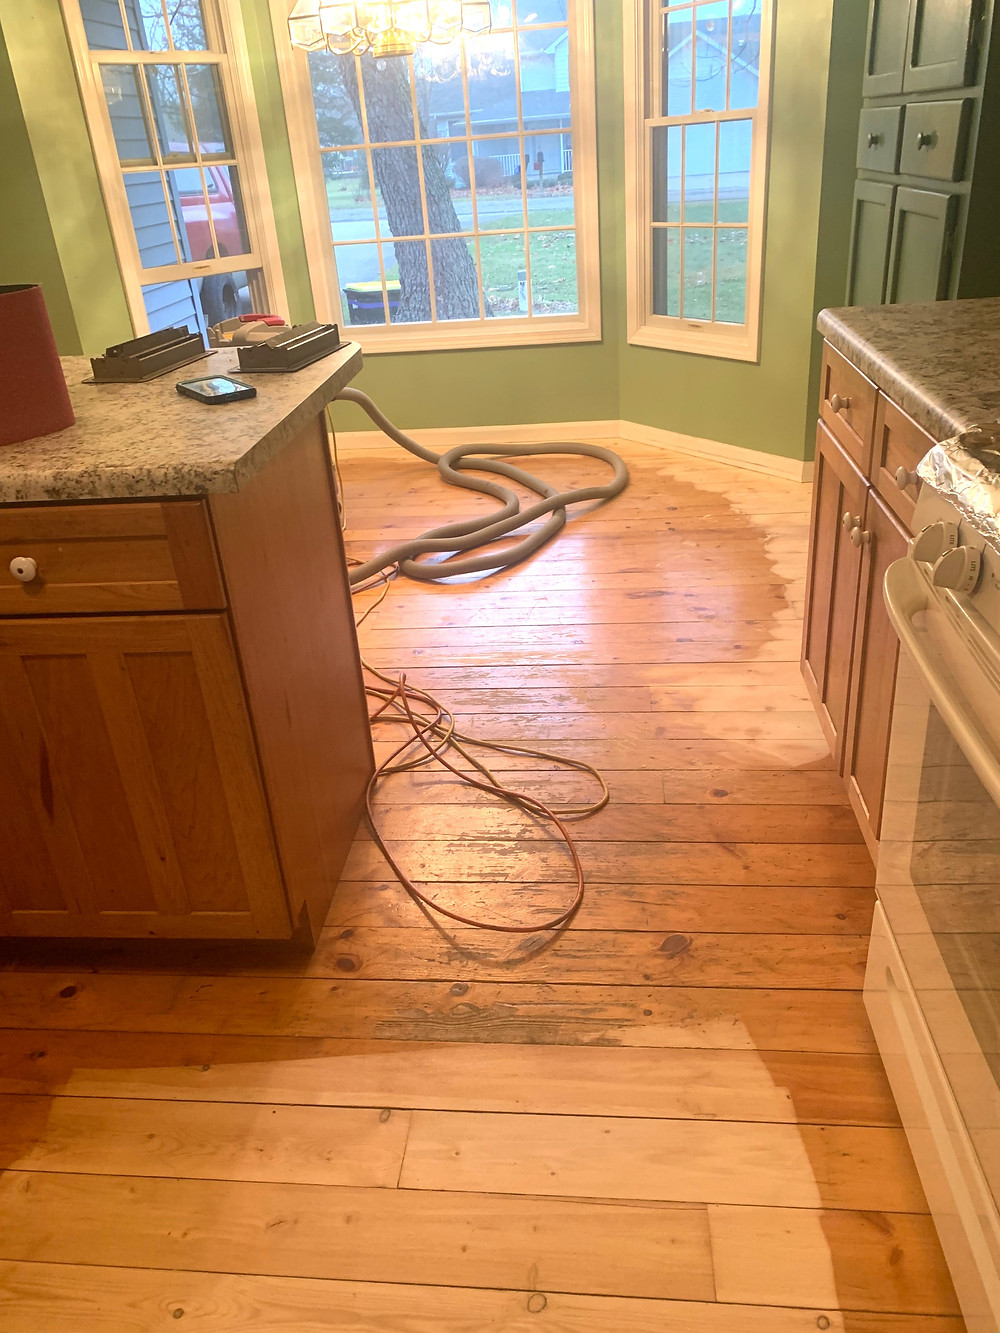 soft floors like pine allow for damage to penetrate much deeper than harder flooring like Oak or Hickory